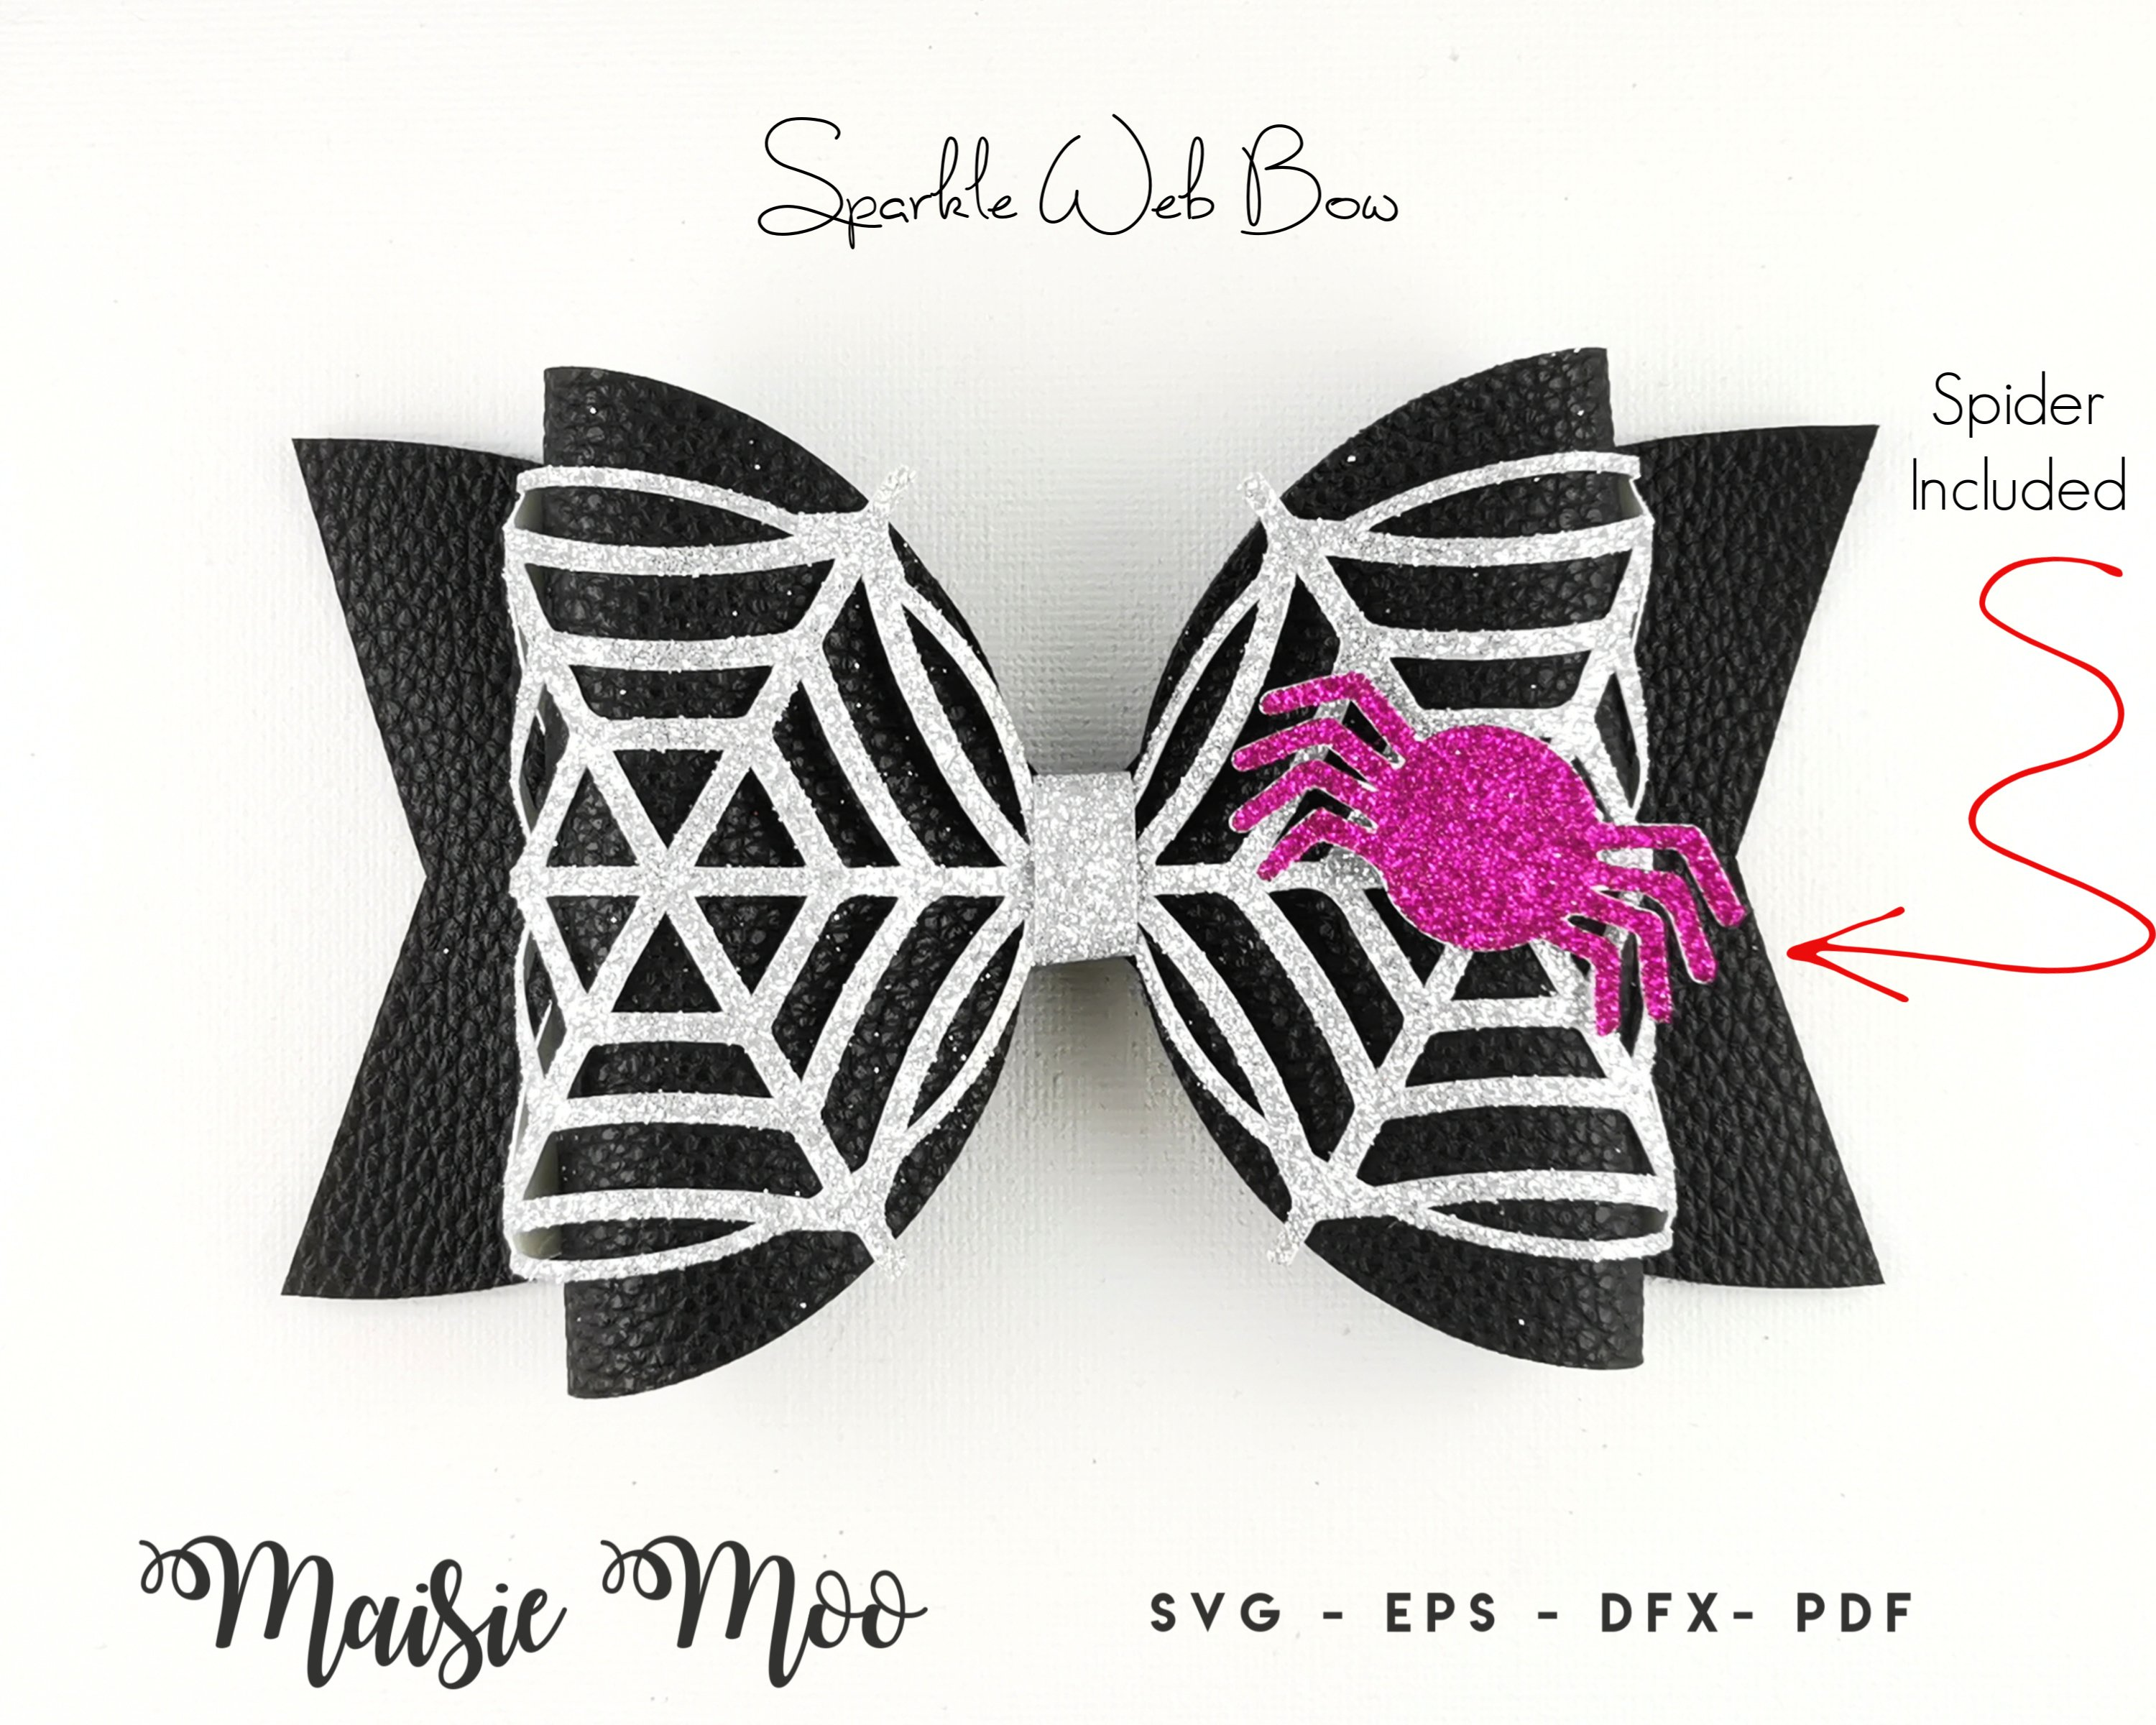 Spiderweb Bow Template SVG, Lace Bow SVG, Felt Bow PDF, example image 4